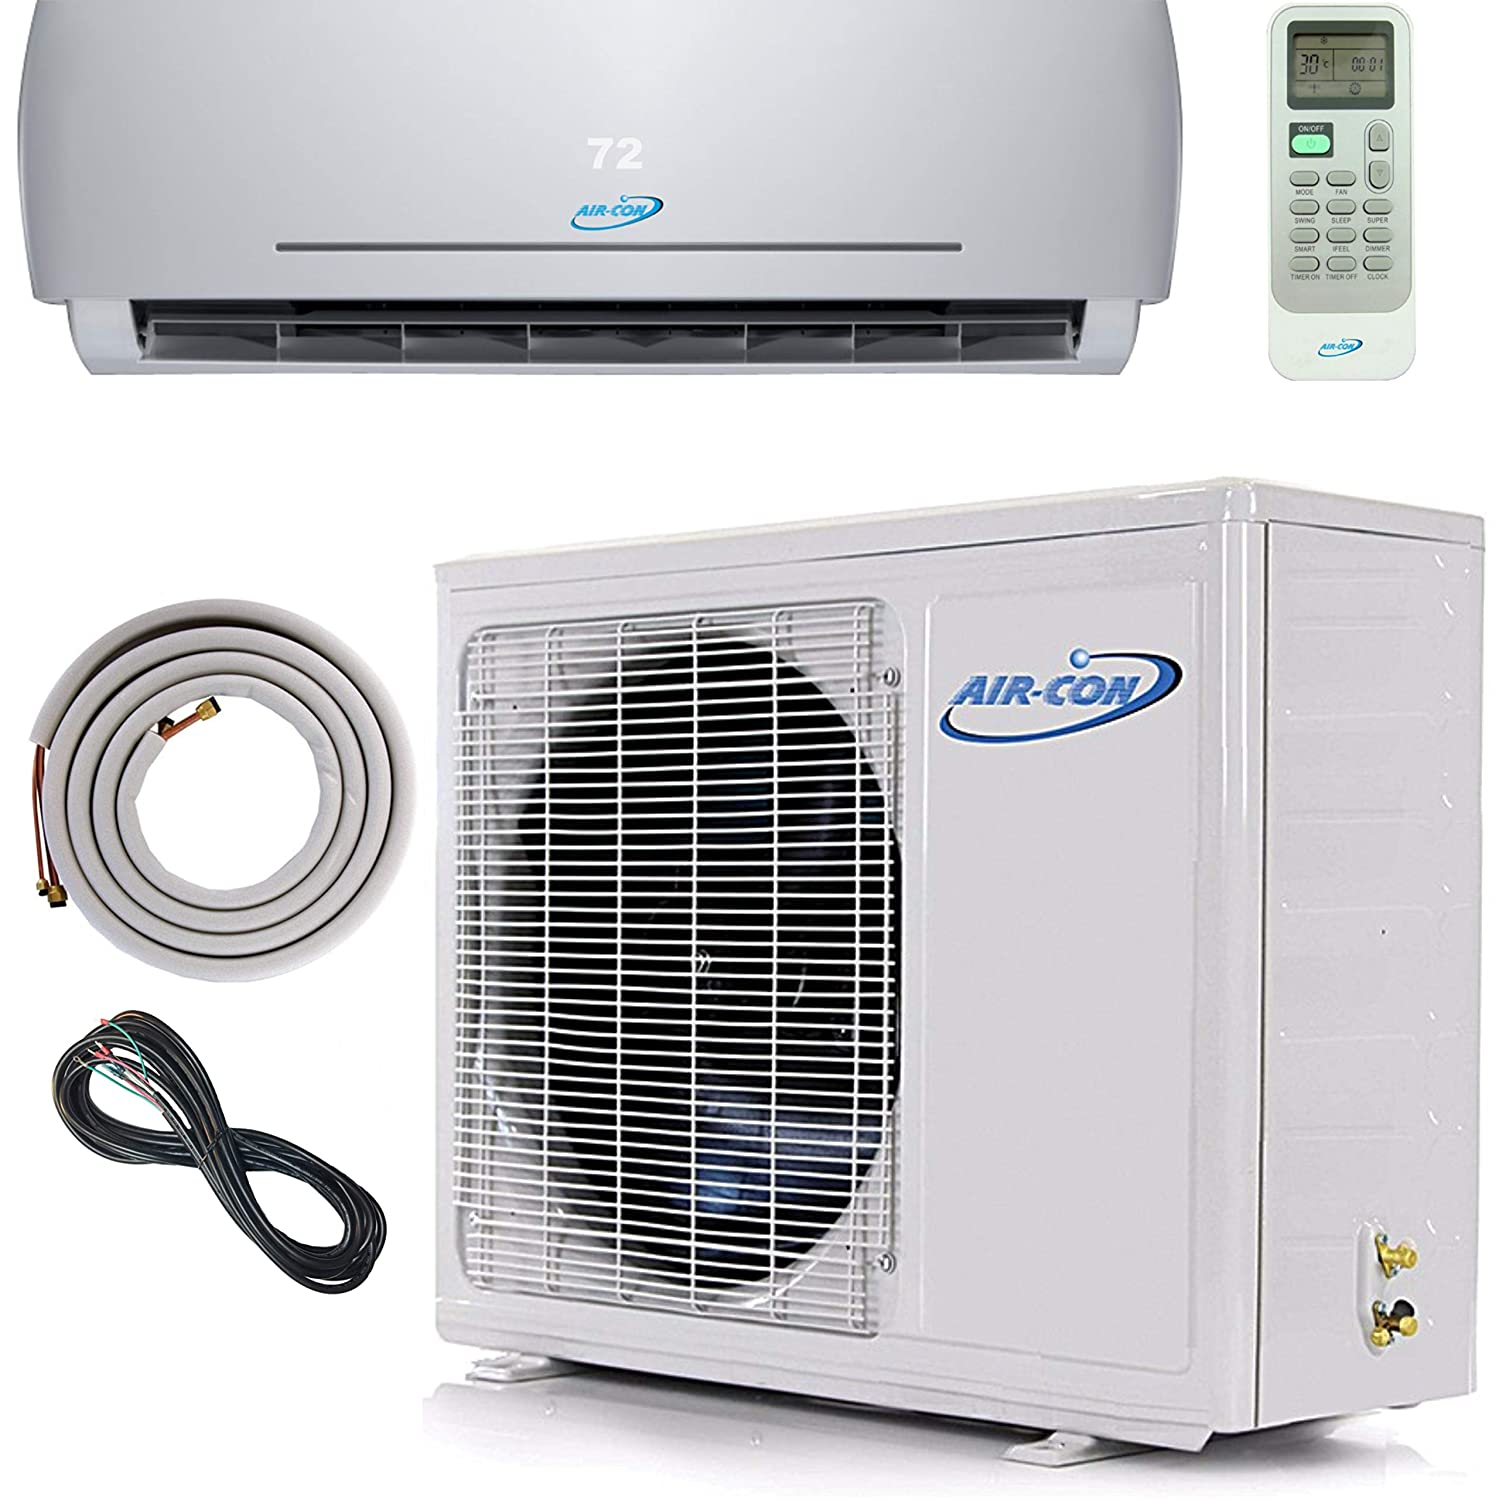 24000 BTU Mini Split Ductless Air Conditioner – 21 SEER - Includes Free 12' Lineset and Wiring - Arrives 100% Ready to Install - Pre-Charged Inverter Compressor – 2 Ton Heat Pump - USA Parts and Tech